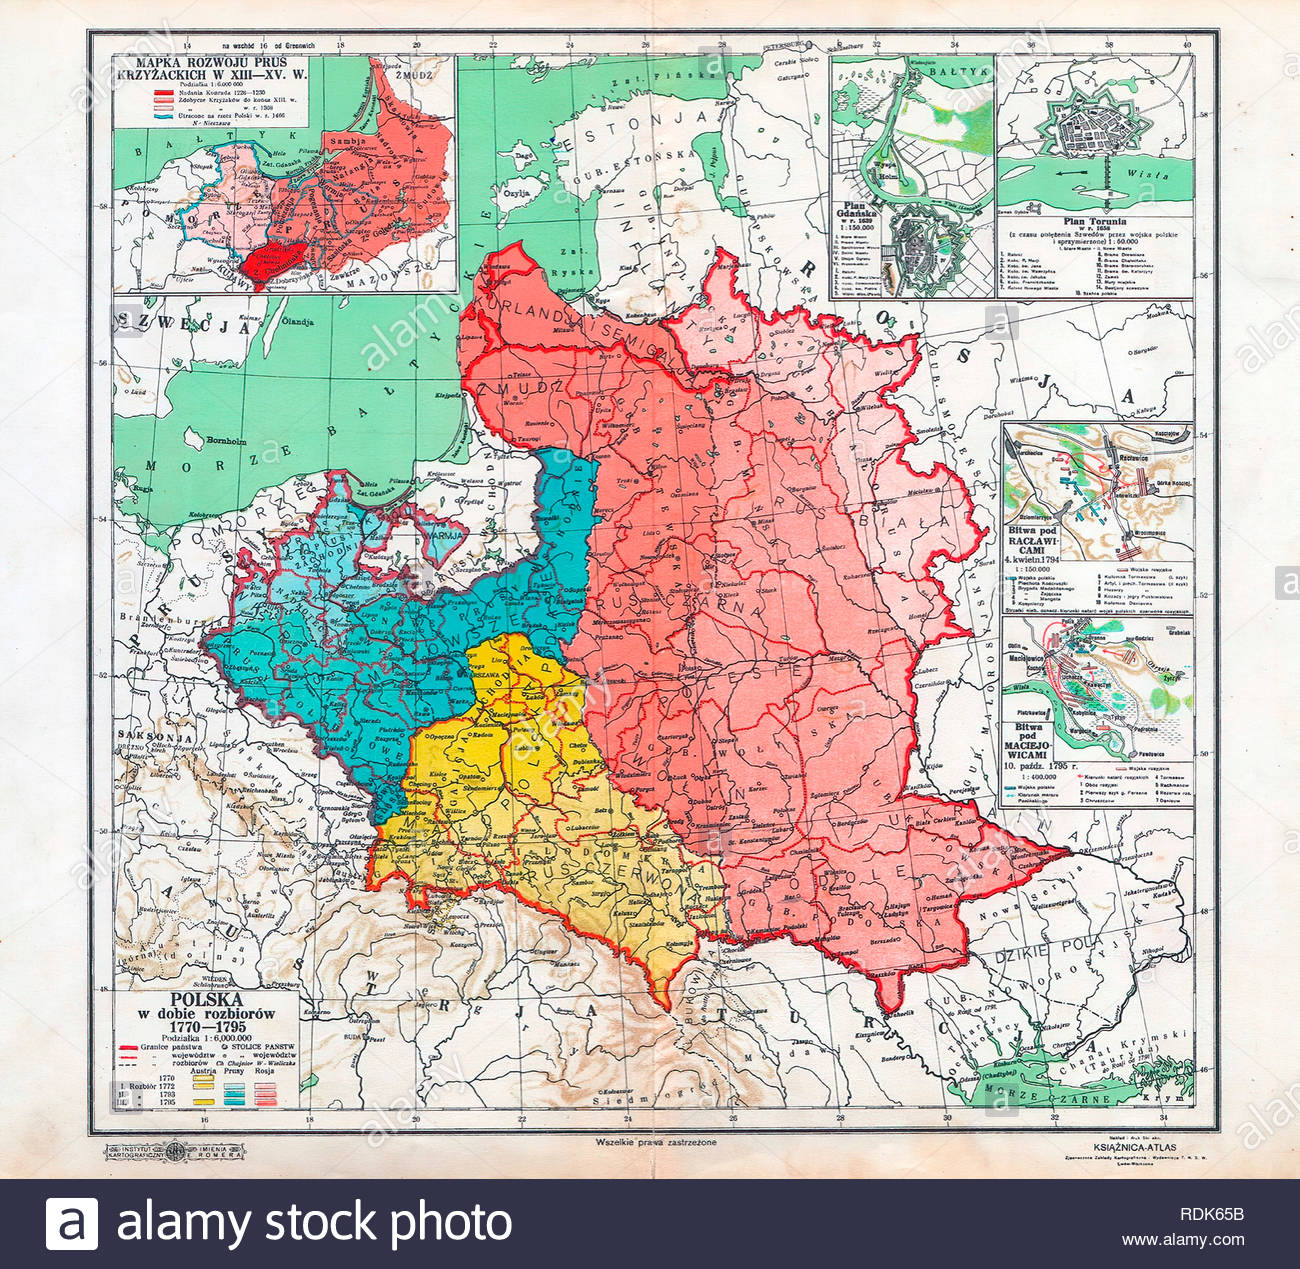 Poland On The World Map.Poland Map Stock Photos Poland Map Stock Images Alamy